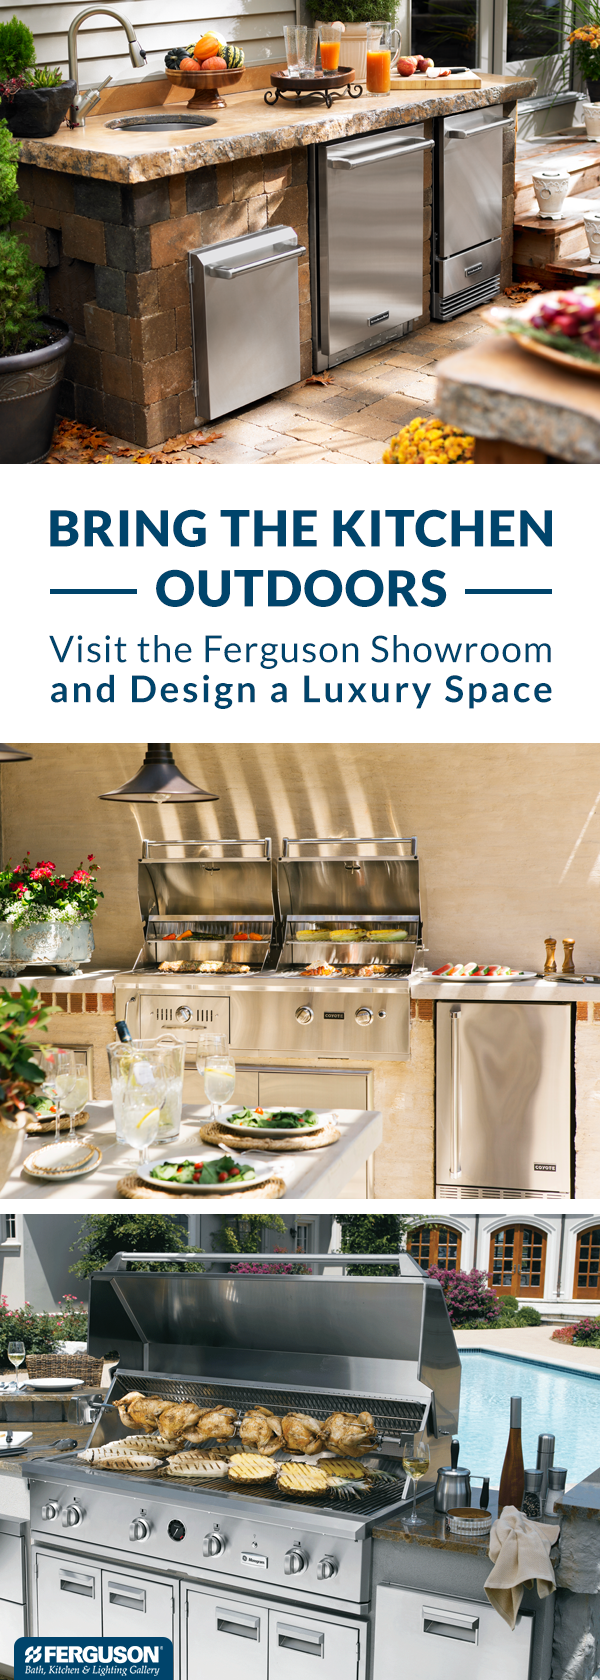 At Ferguson Bath, Kitchen & Lighting Gallery, we have everything you